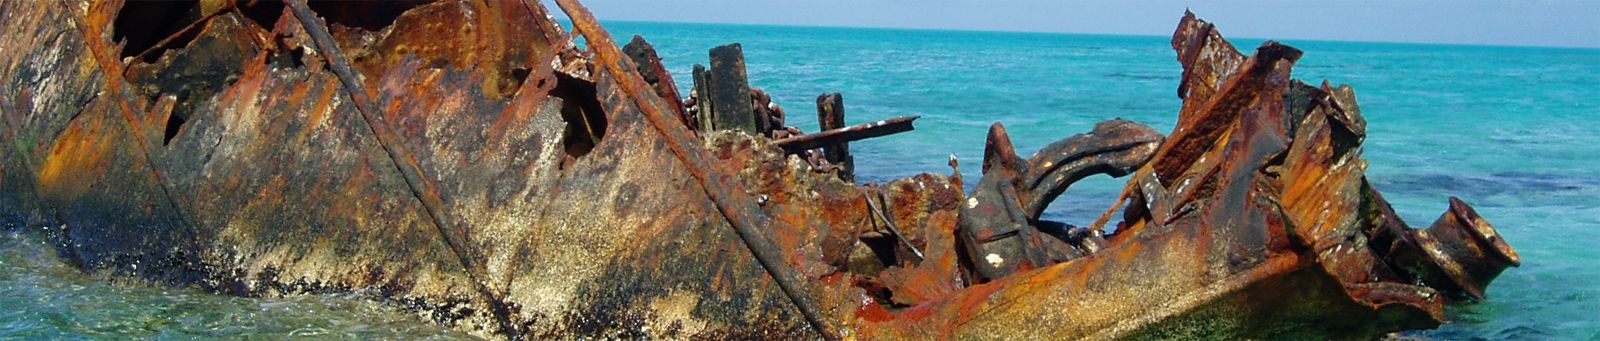 Professionalism | What is corrosion? Why does it occur?